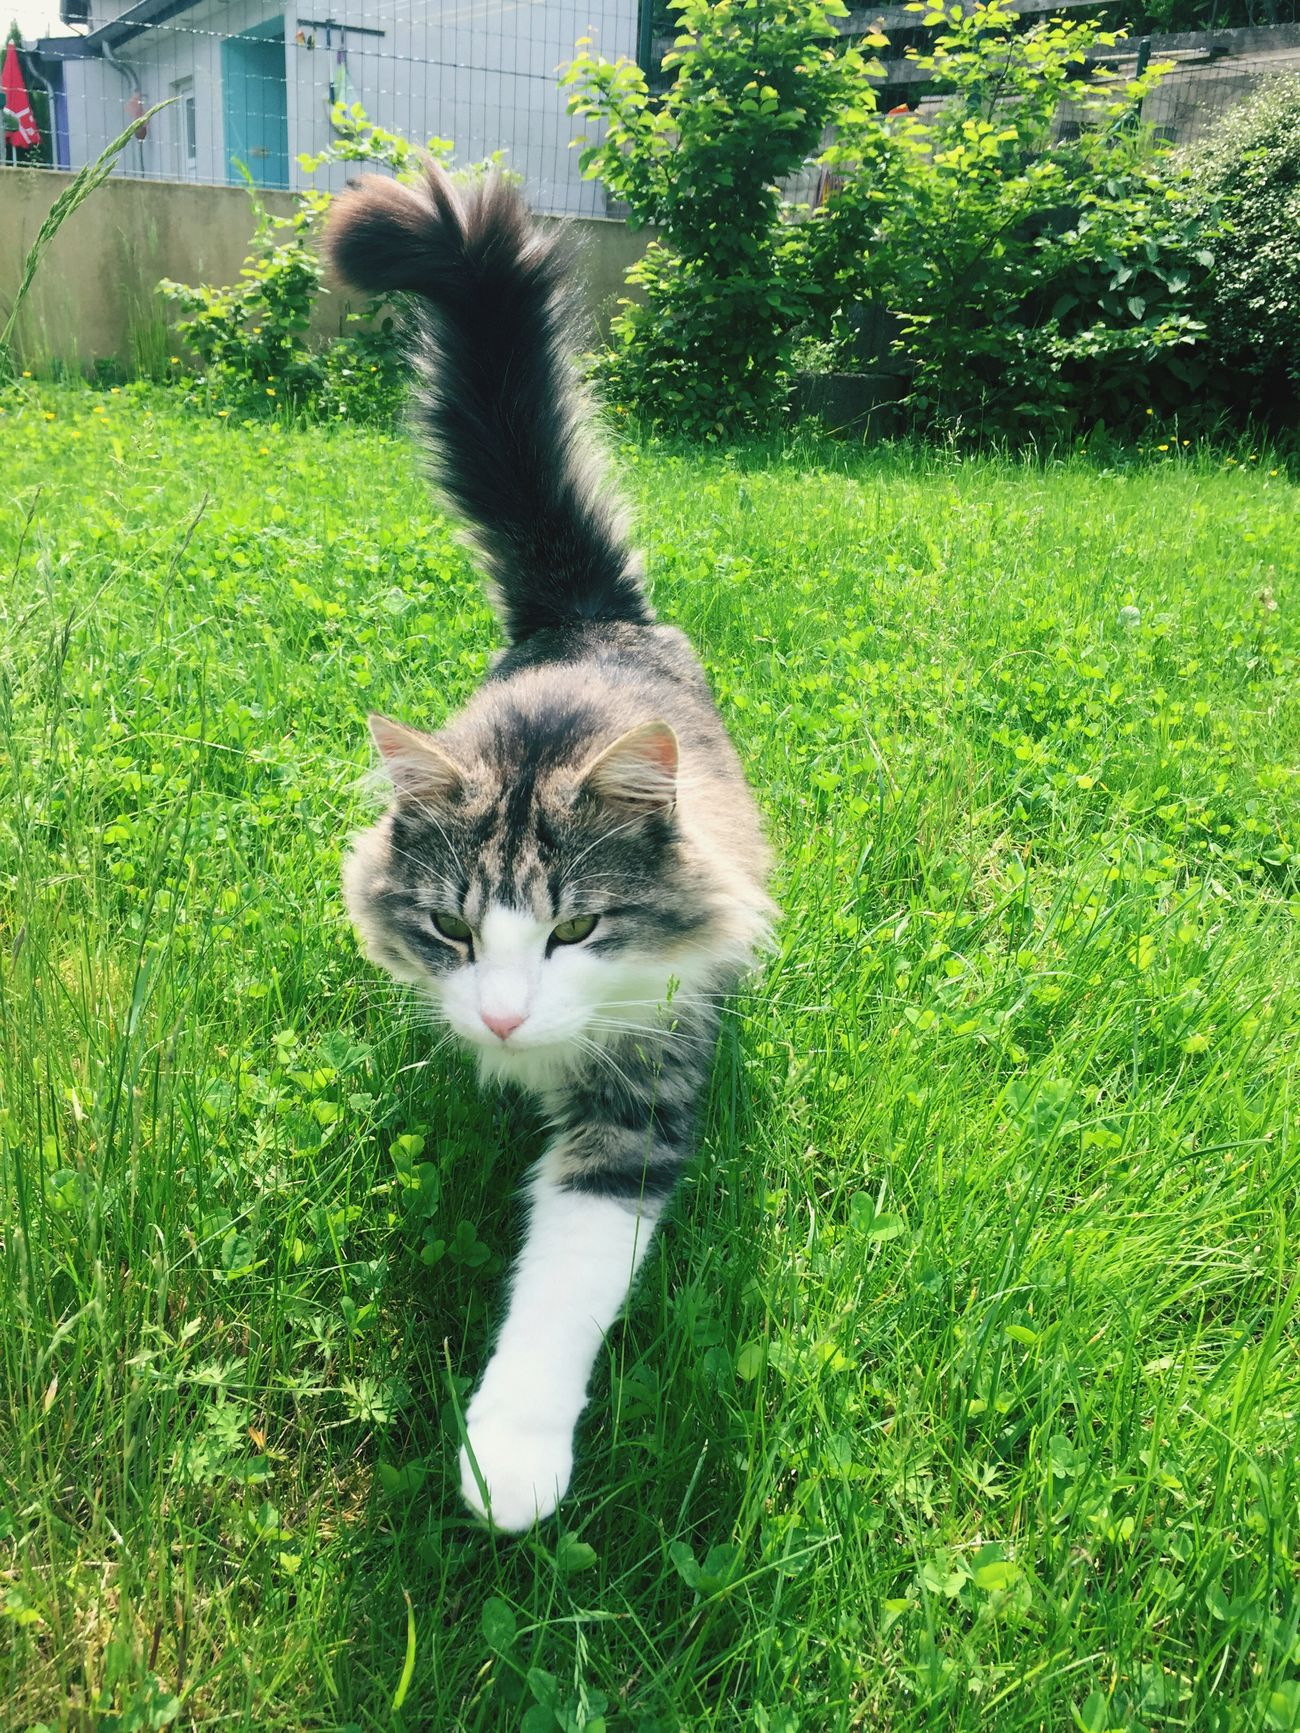 Neighbors Cat coming to me 😺, Nachbarskatze , Cat♡ Cats Cat Lovers Cats 🐱 Cats Lovers  Katzen 💜 Katzen Katzenliebe Katze Tiere♡ Tiere Tiere/Animals Animals🐾 Chat Hobbyphotography Hobbyfotograf Iphonegraphy